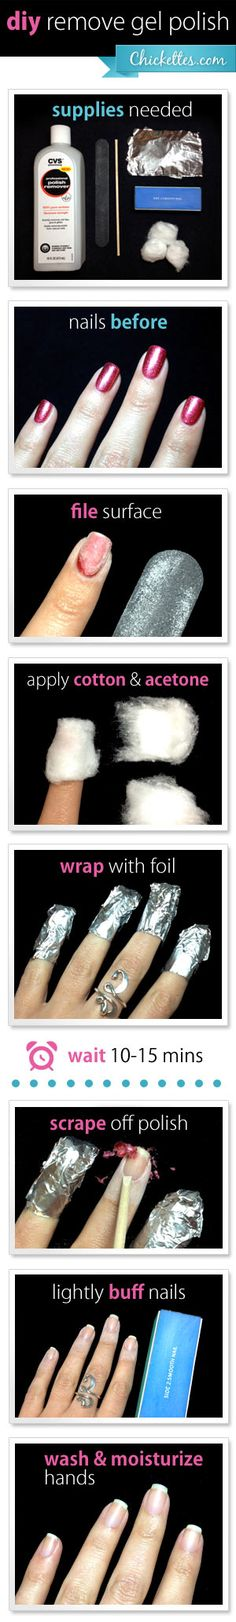 #diy remove Gel Polish from home